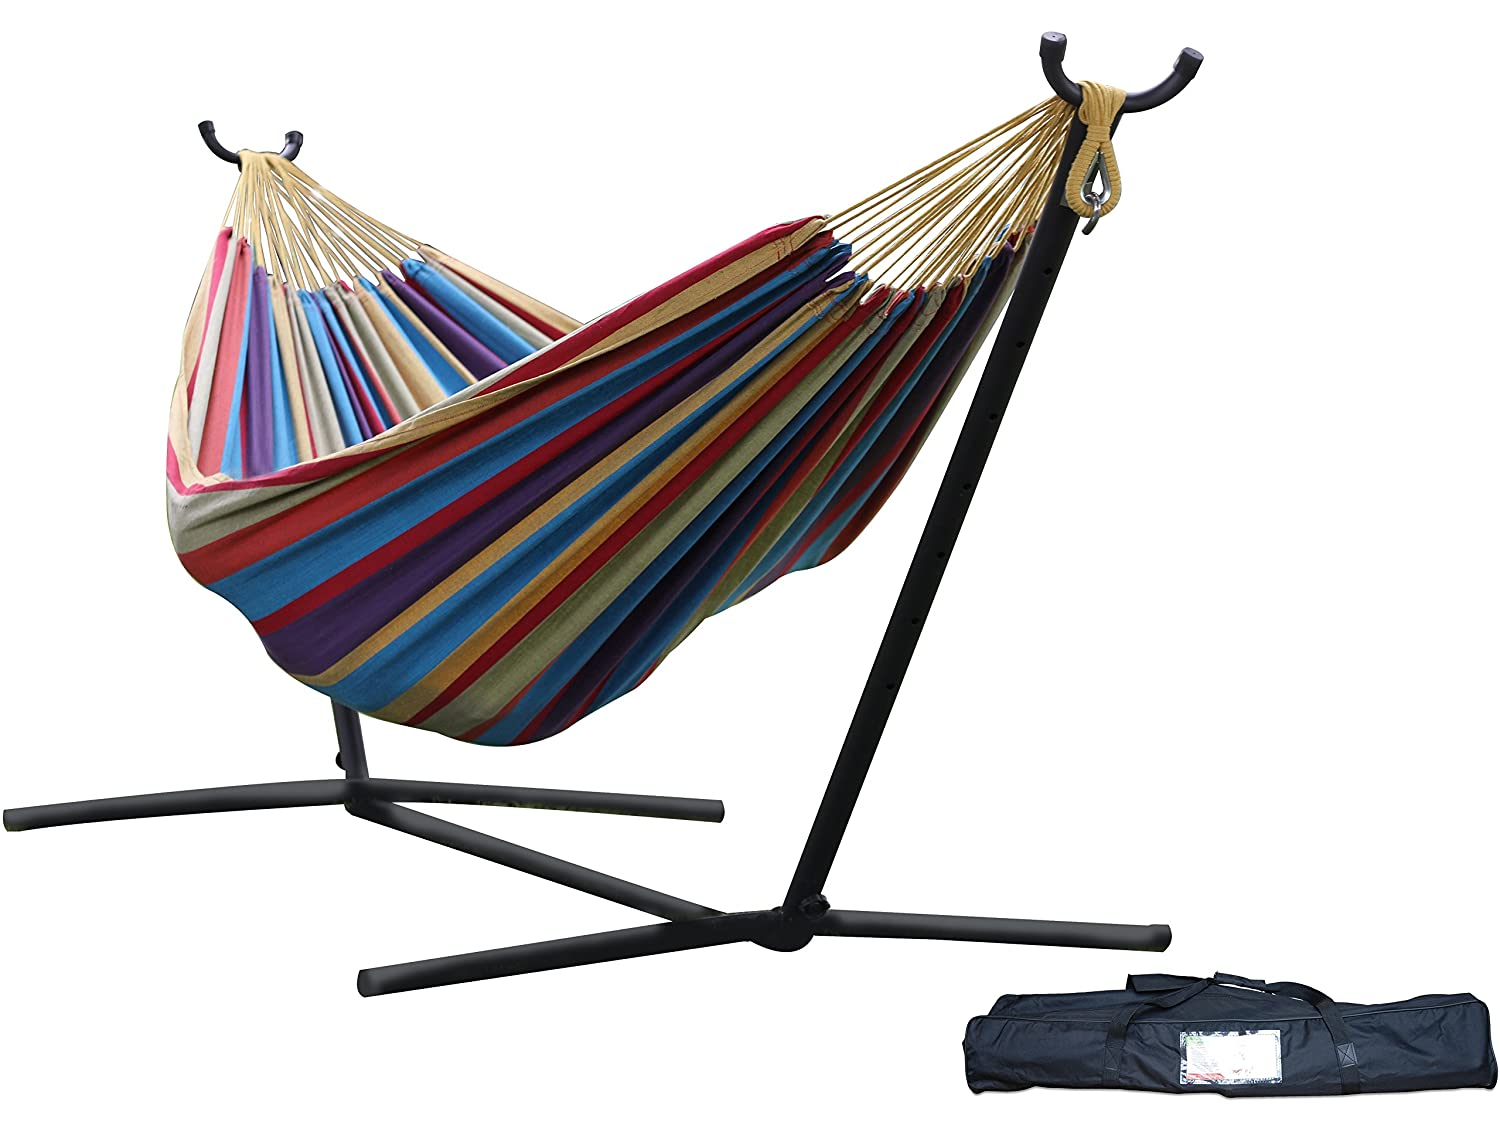 standing free with flow lujo stand gadget living portfolio double hammock